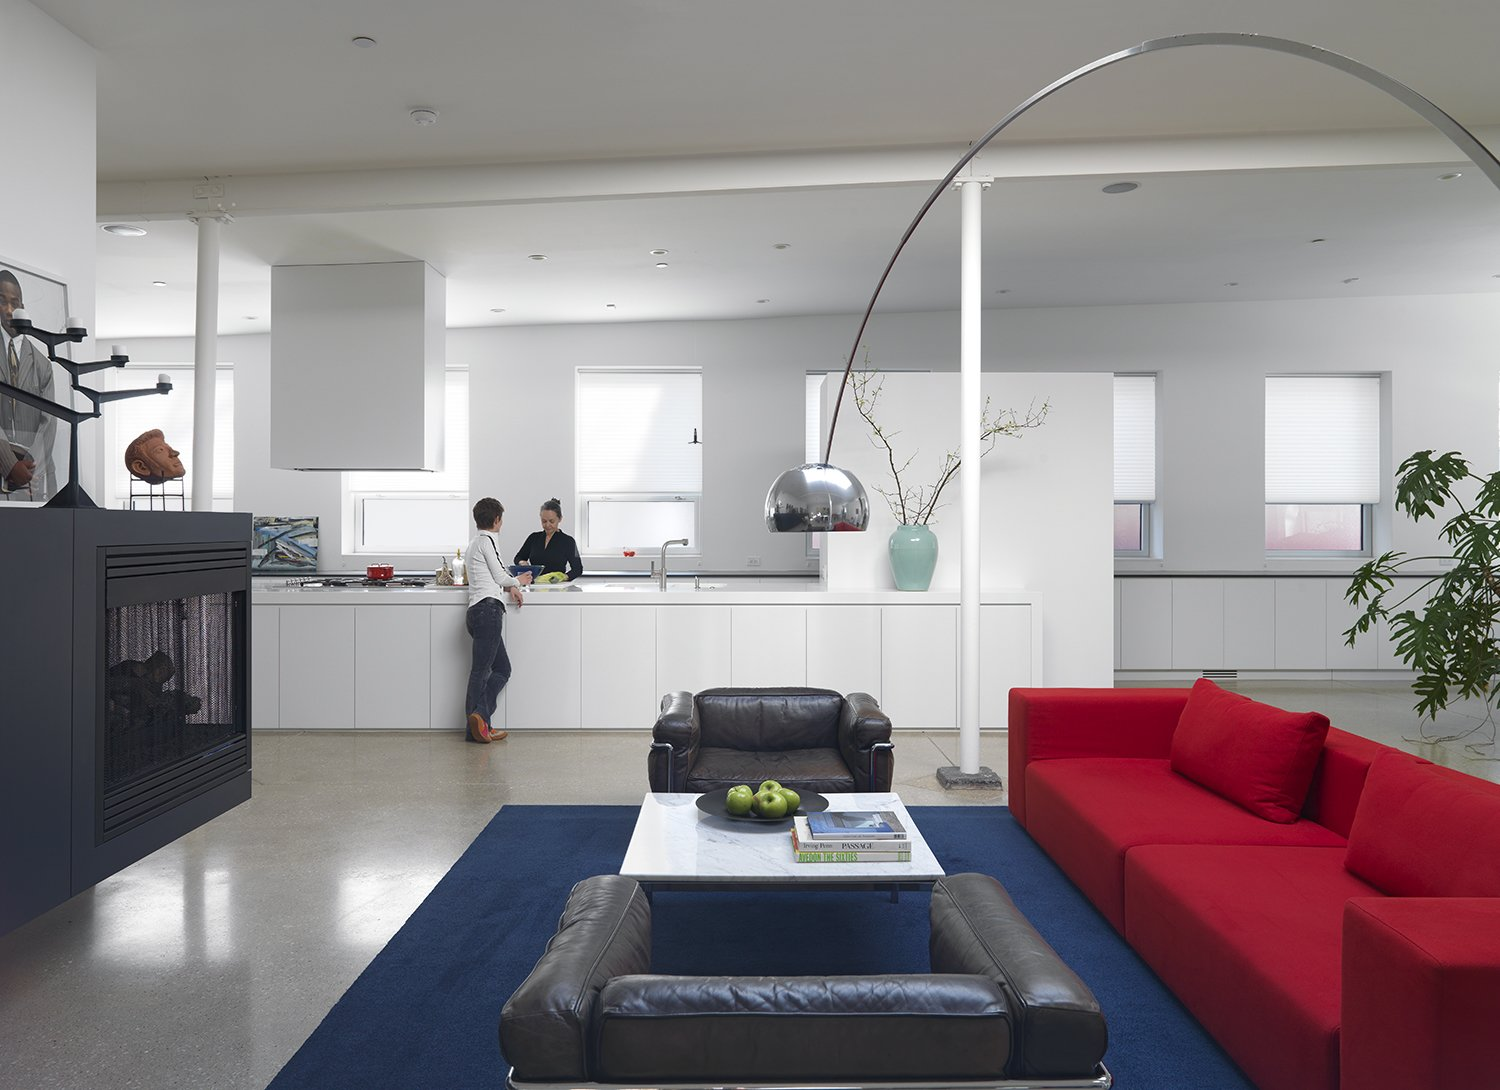 Saturation demarcates the line between the primary living space and kitchen in the existing open-plan structure. Were it not for tonal contrasts, aided also by a ground and polished concrete floor, the kitchen would be a virtual whiteout.  Ravenswood Residence by Ian Spula